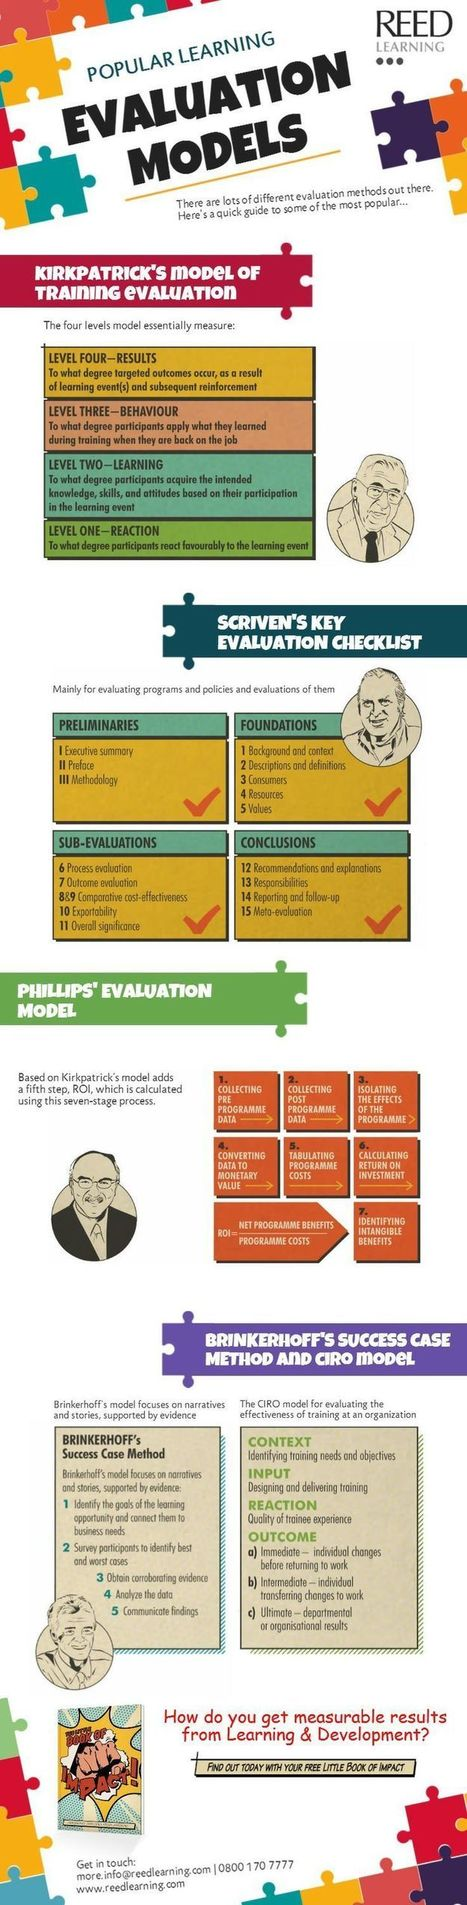 Popular Learning Evaluation Models Infographic - e-Learning Infographics | Educación y TIC | Scoop.it